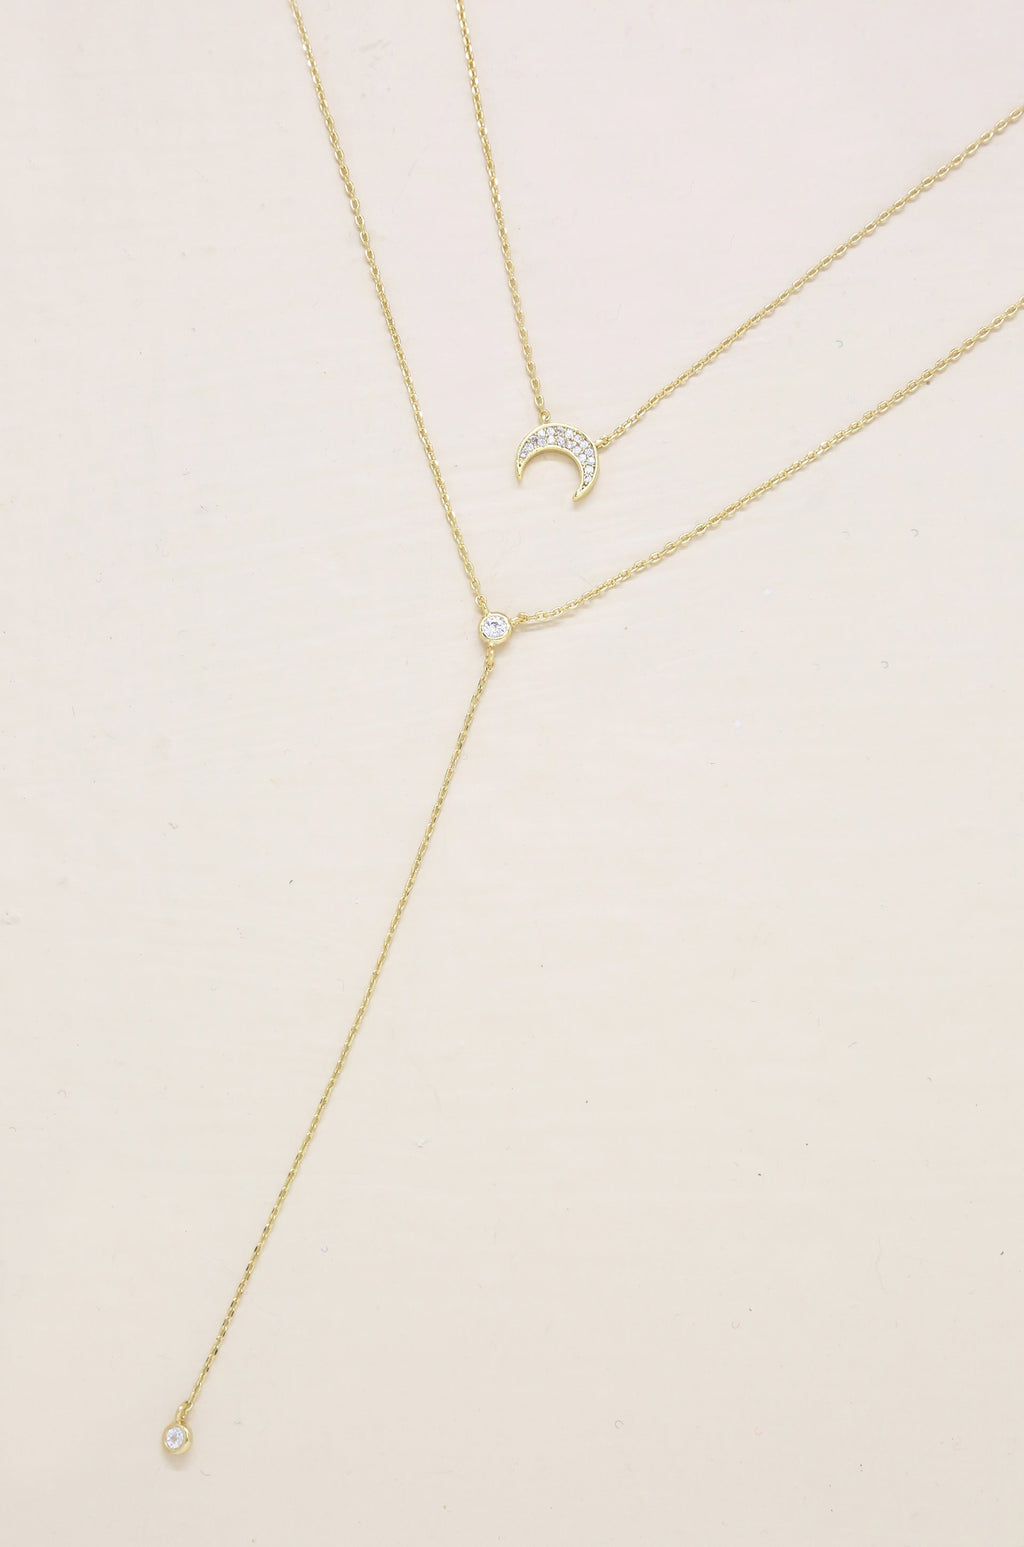 2pc Dainty Layered 'Crescent Moon' Necklace Set